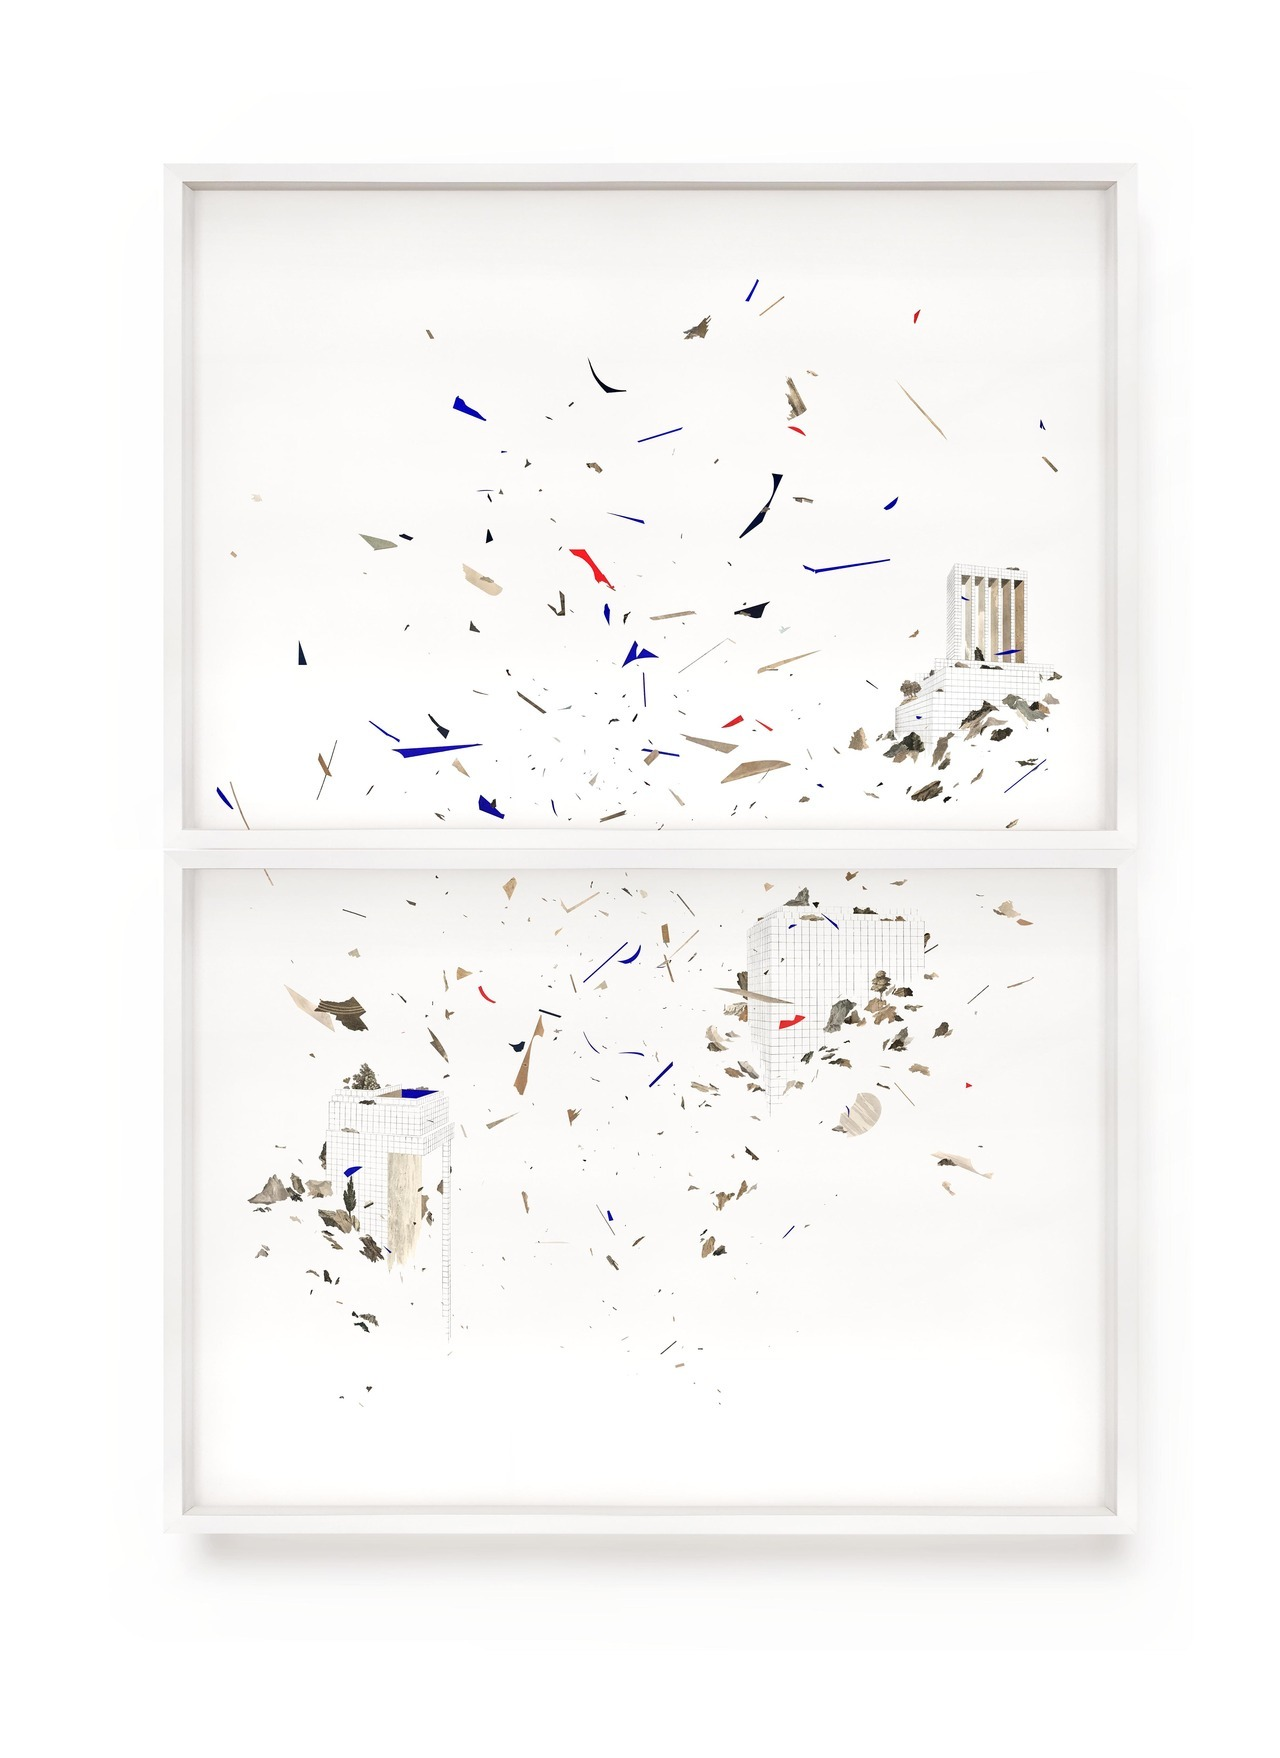 Claire Trotignon   Hyperpianos  Drawing, collage of engraving 100 x 140 cm diptyque - 2018 - Private collection